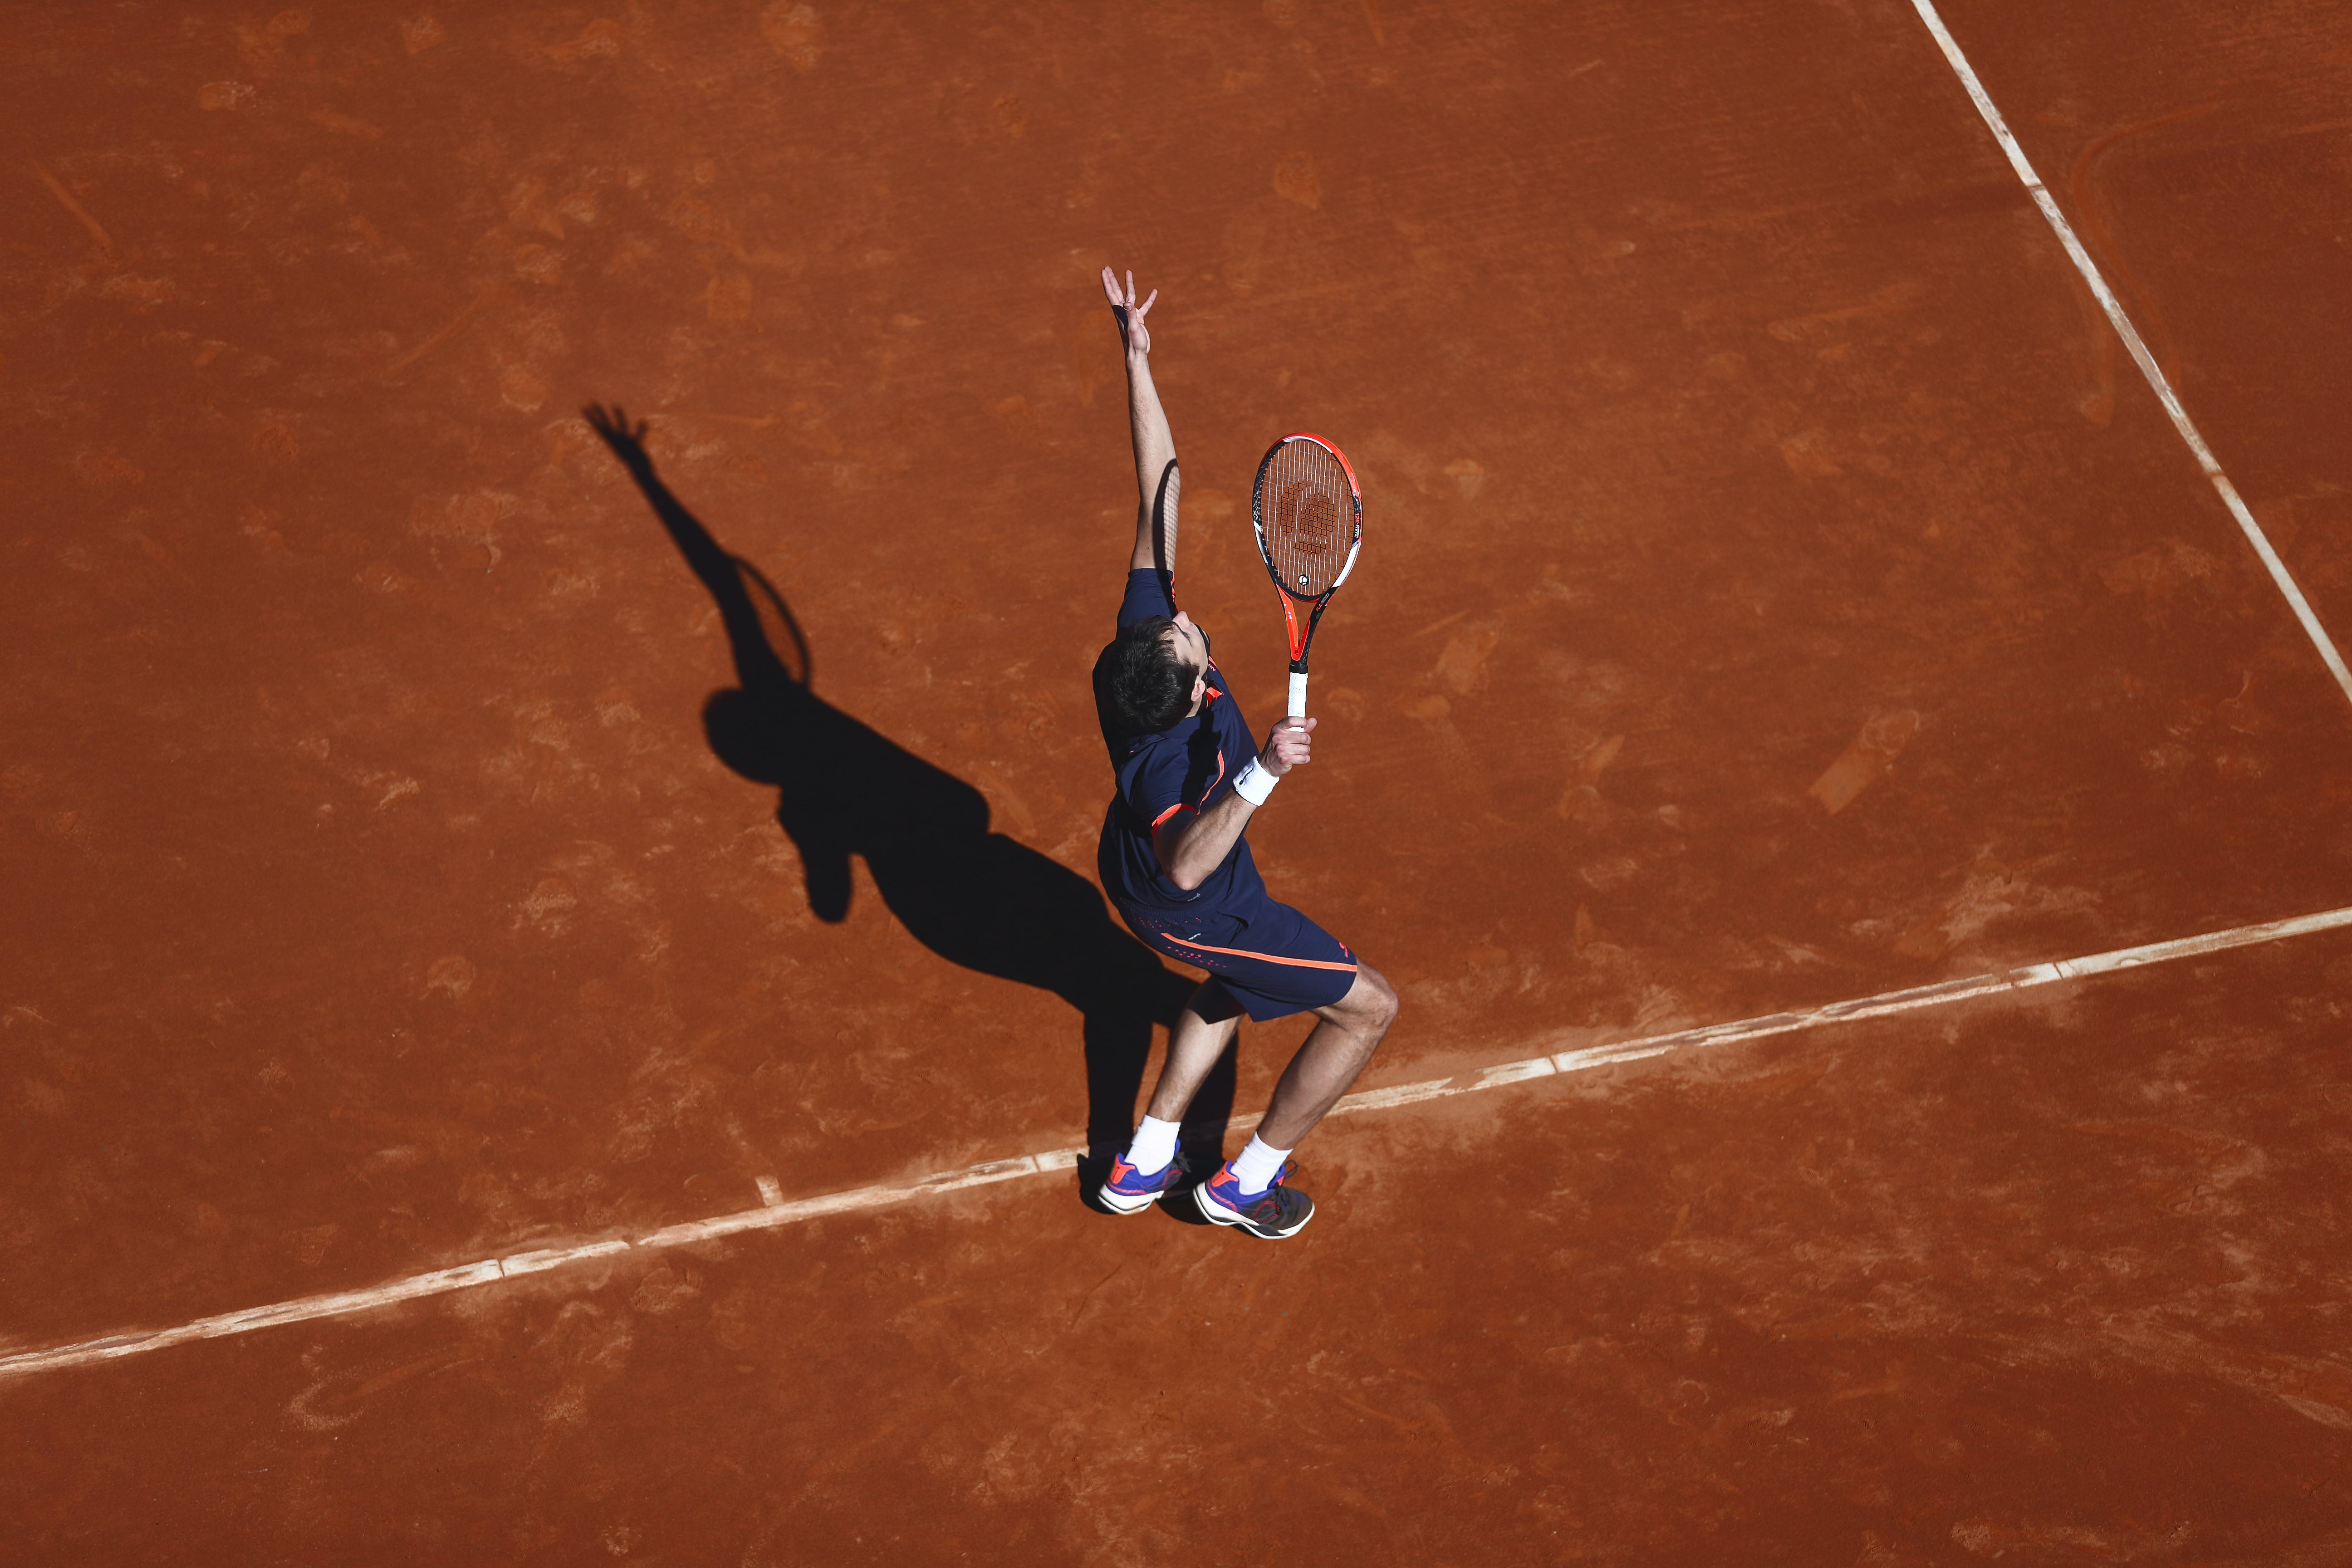 tennis_clement_bcn_2014_g78q7312